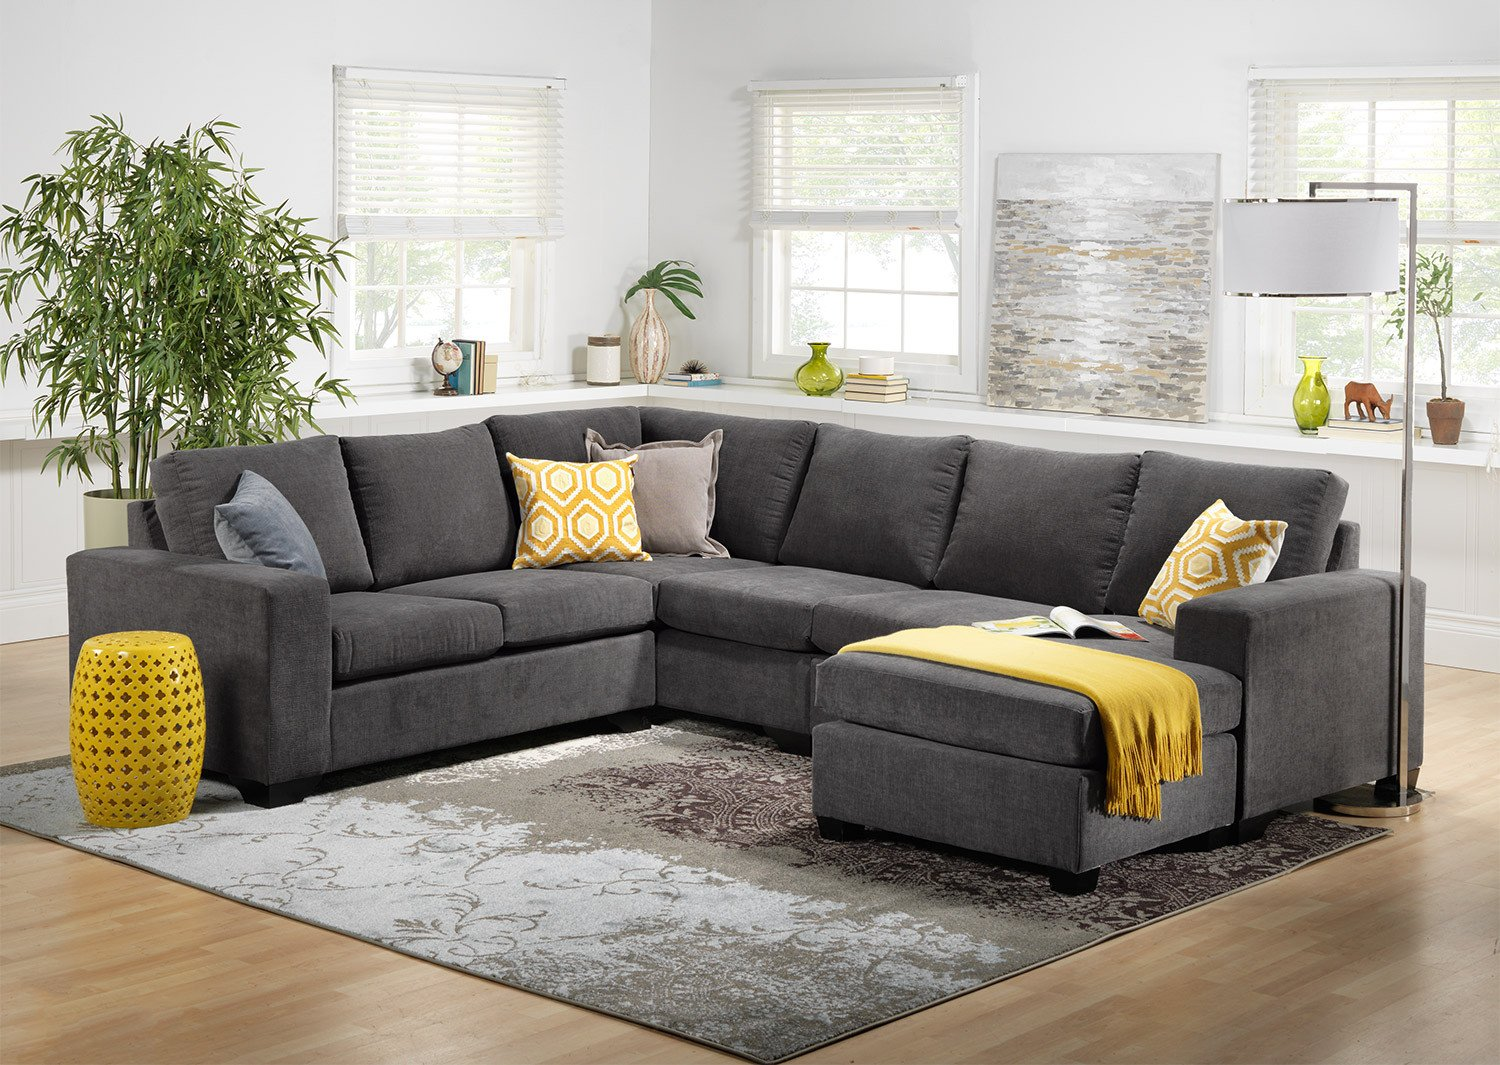 Comfortable Couches Living Room Furniture fortable Sectionals sofa for Elegant Living